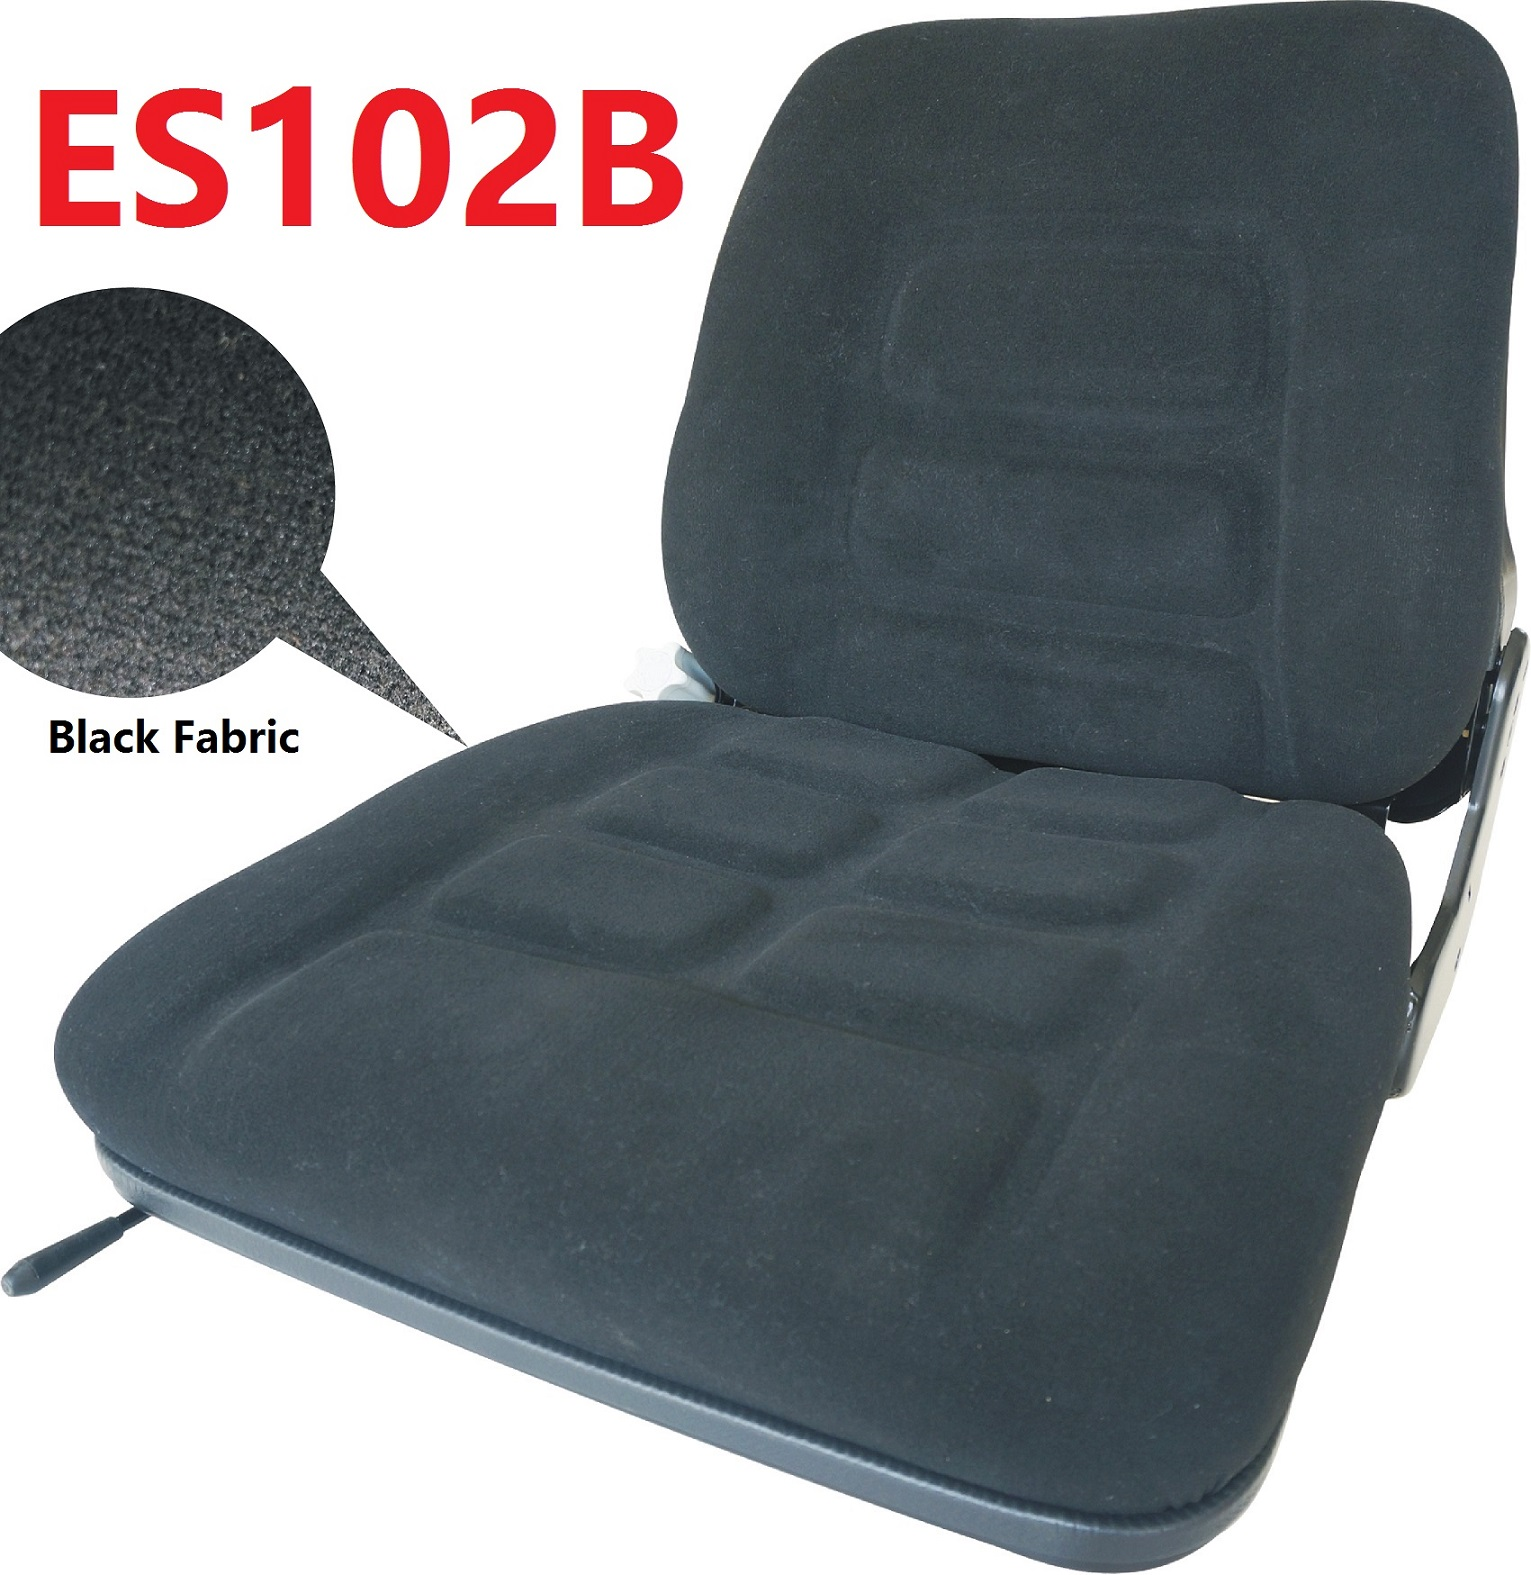 Universal Replacement Suspension Seat ES102B Construction Sweeper Agricultral Tractor Forklift Seat